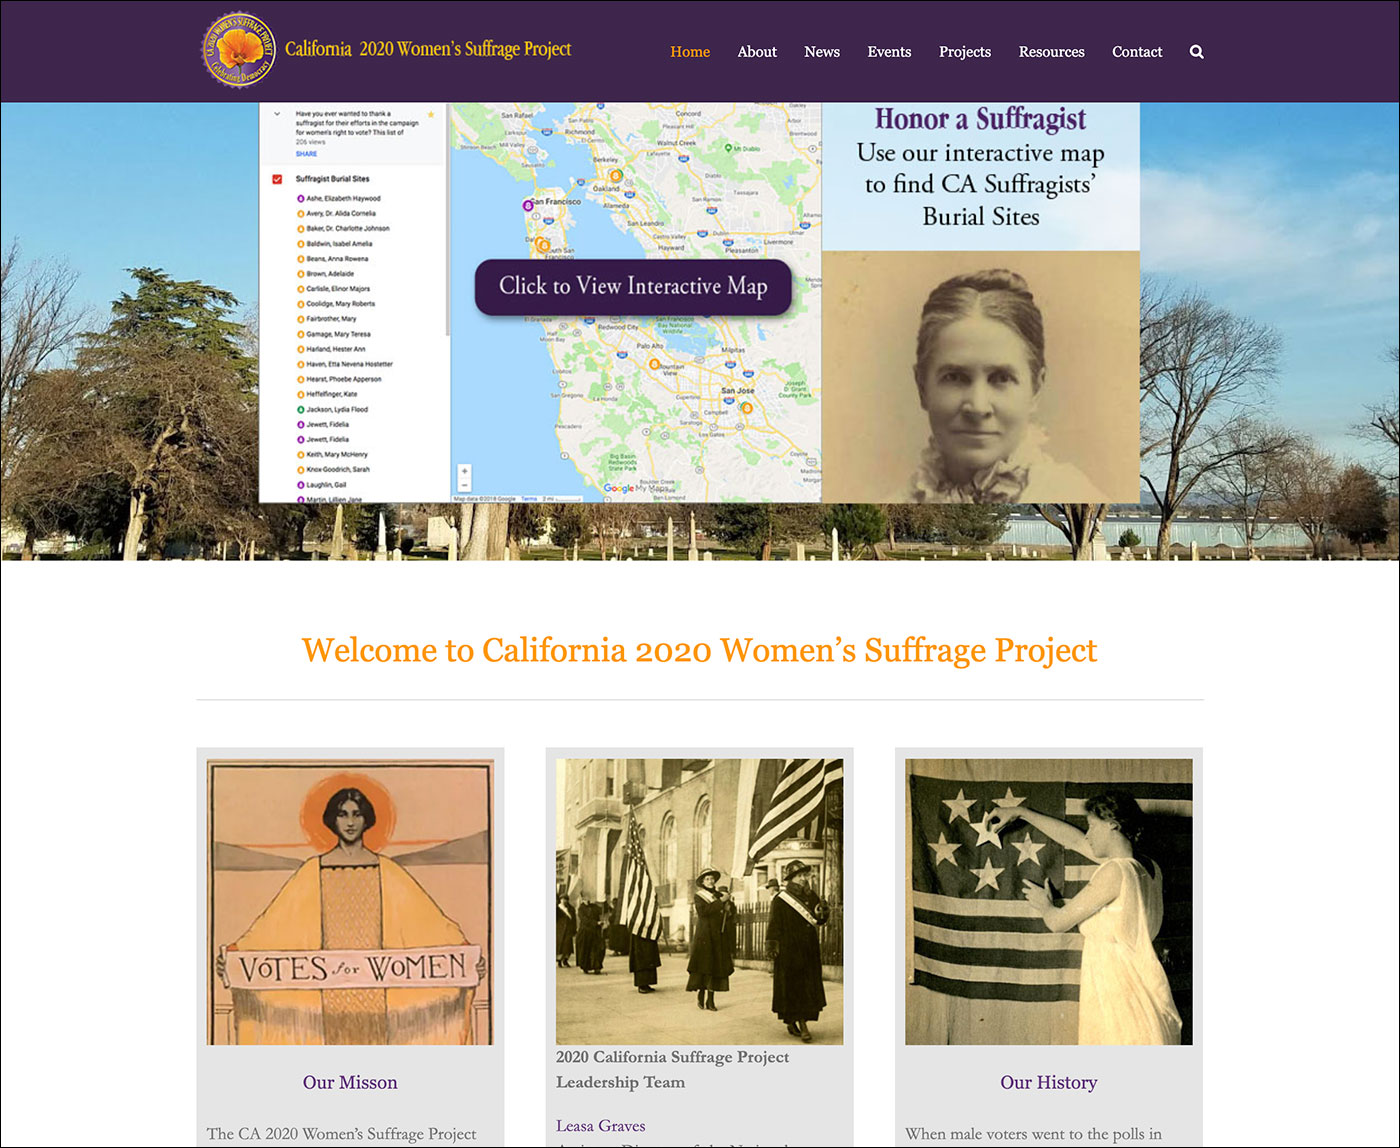 California Women's Suffrage Project Home